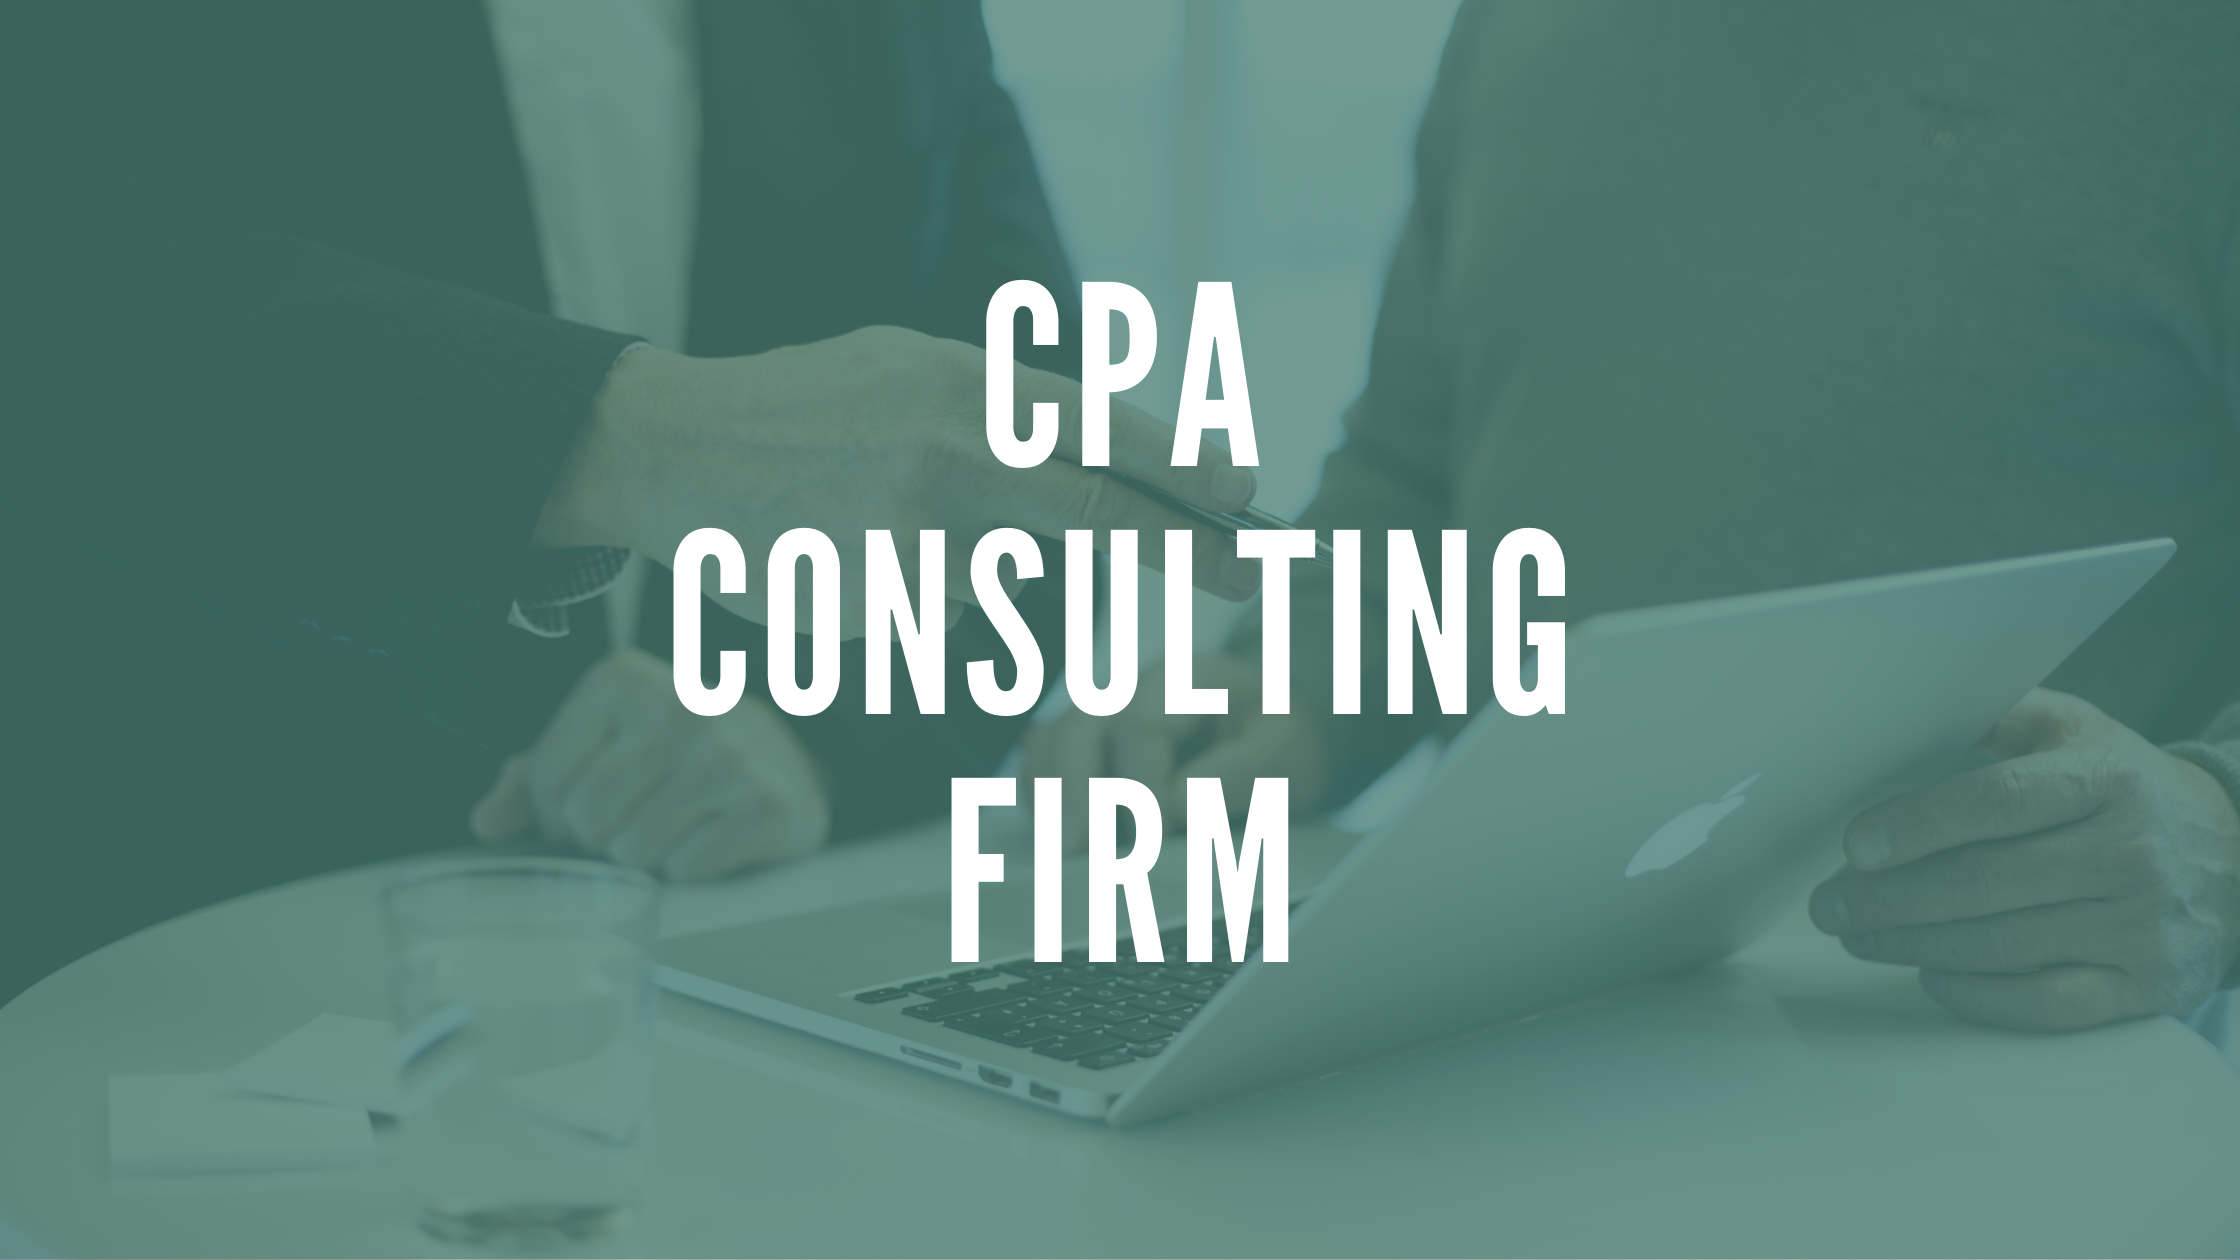 CPA Consulting Firm